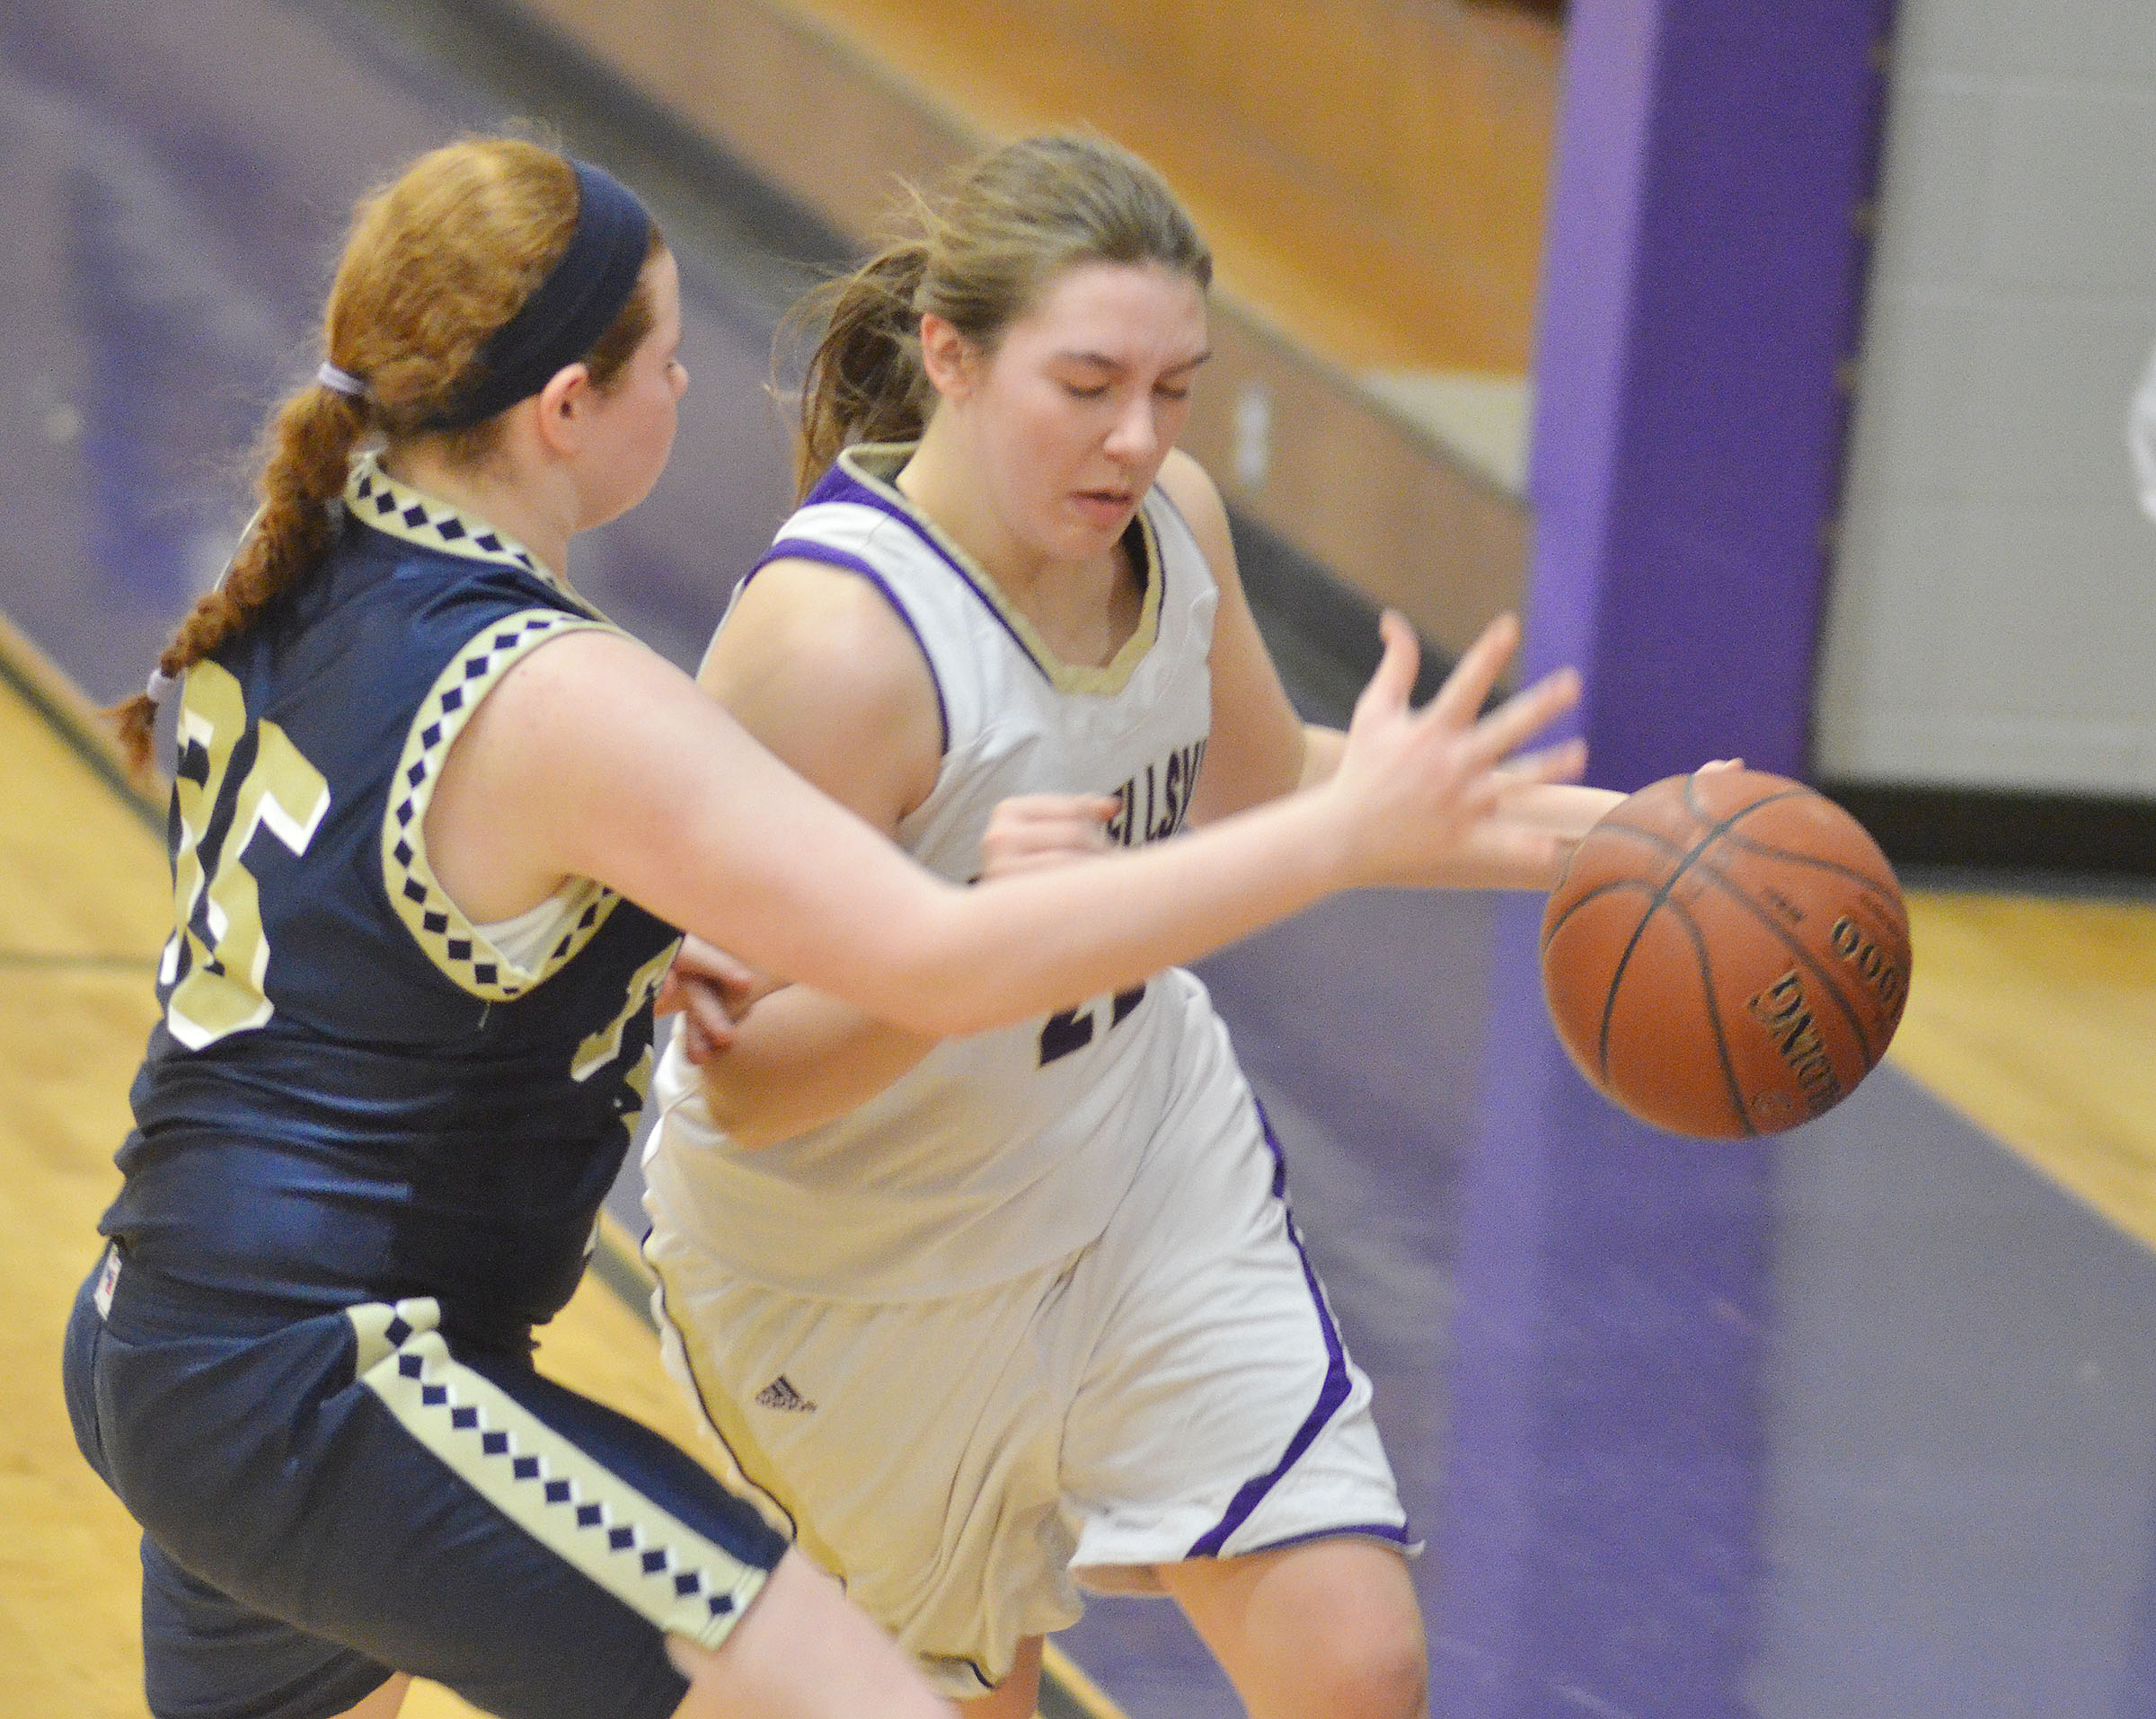 Campbellsville Middle School eighth-grader Abi Wiedewitsch dribbles to the hoop.